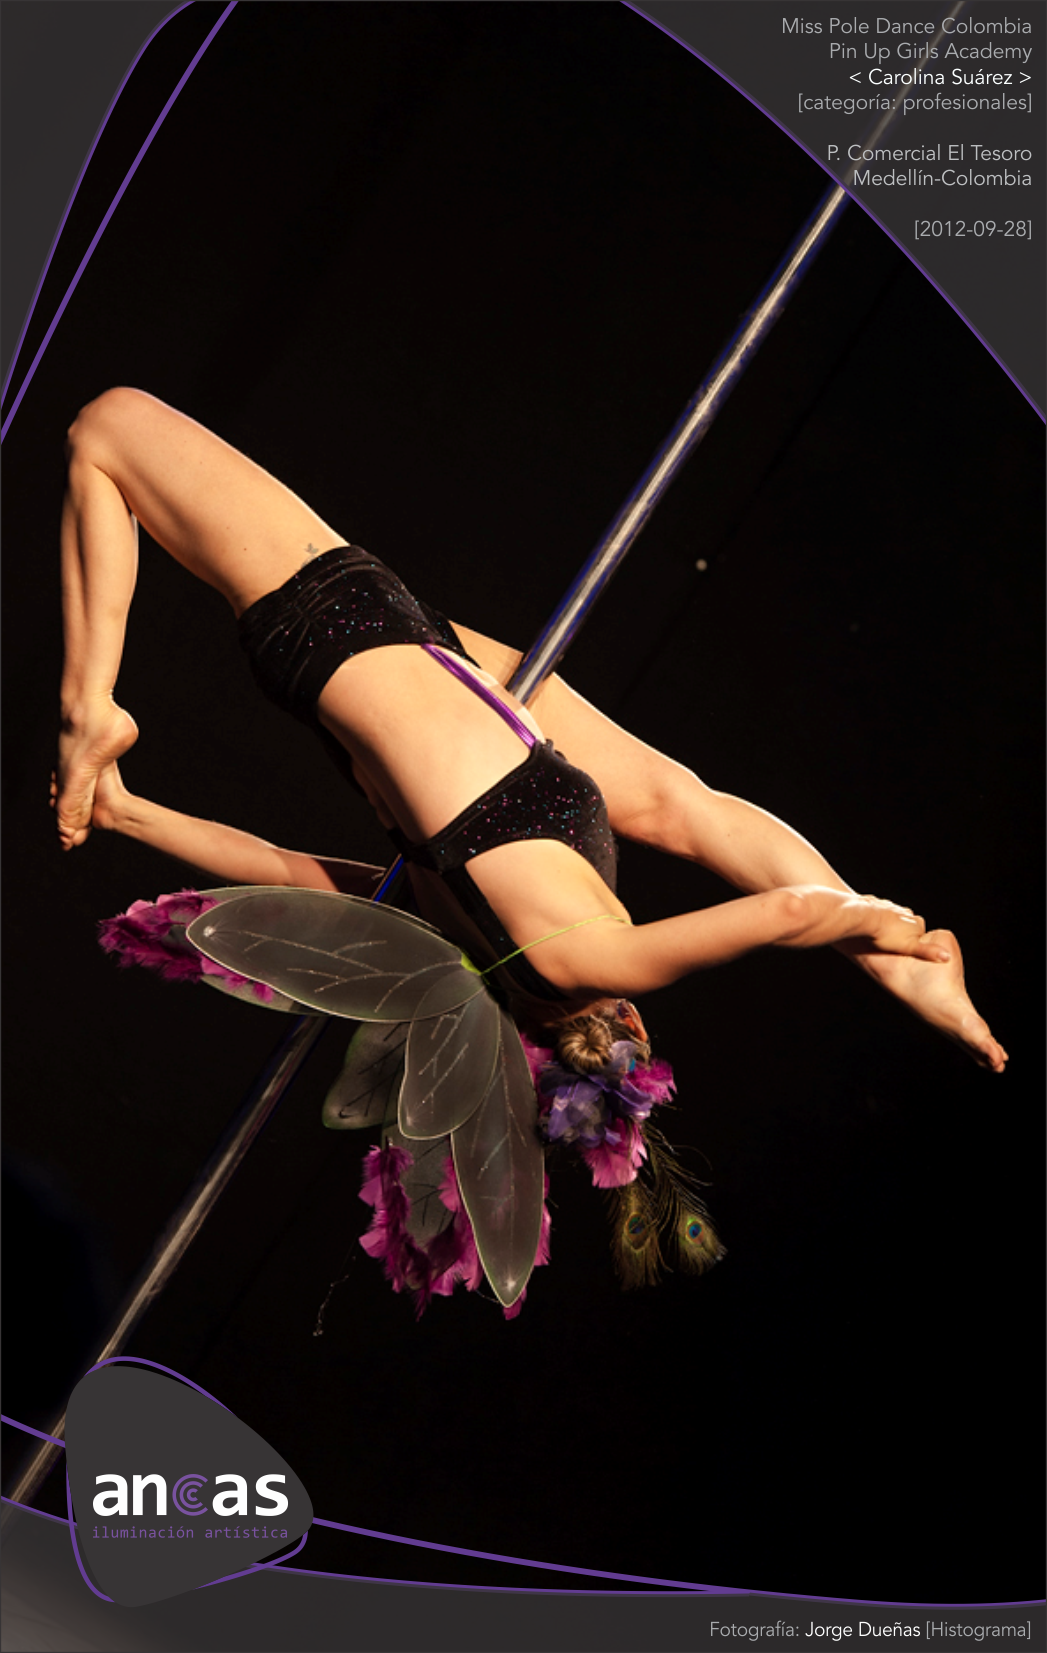 1047 x 1653 png 1212kB, Pin by Ana Carvajal on Miss Pole Dance ...